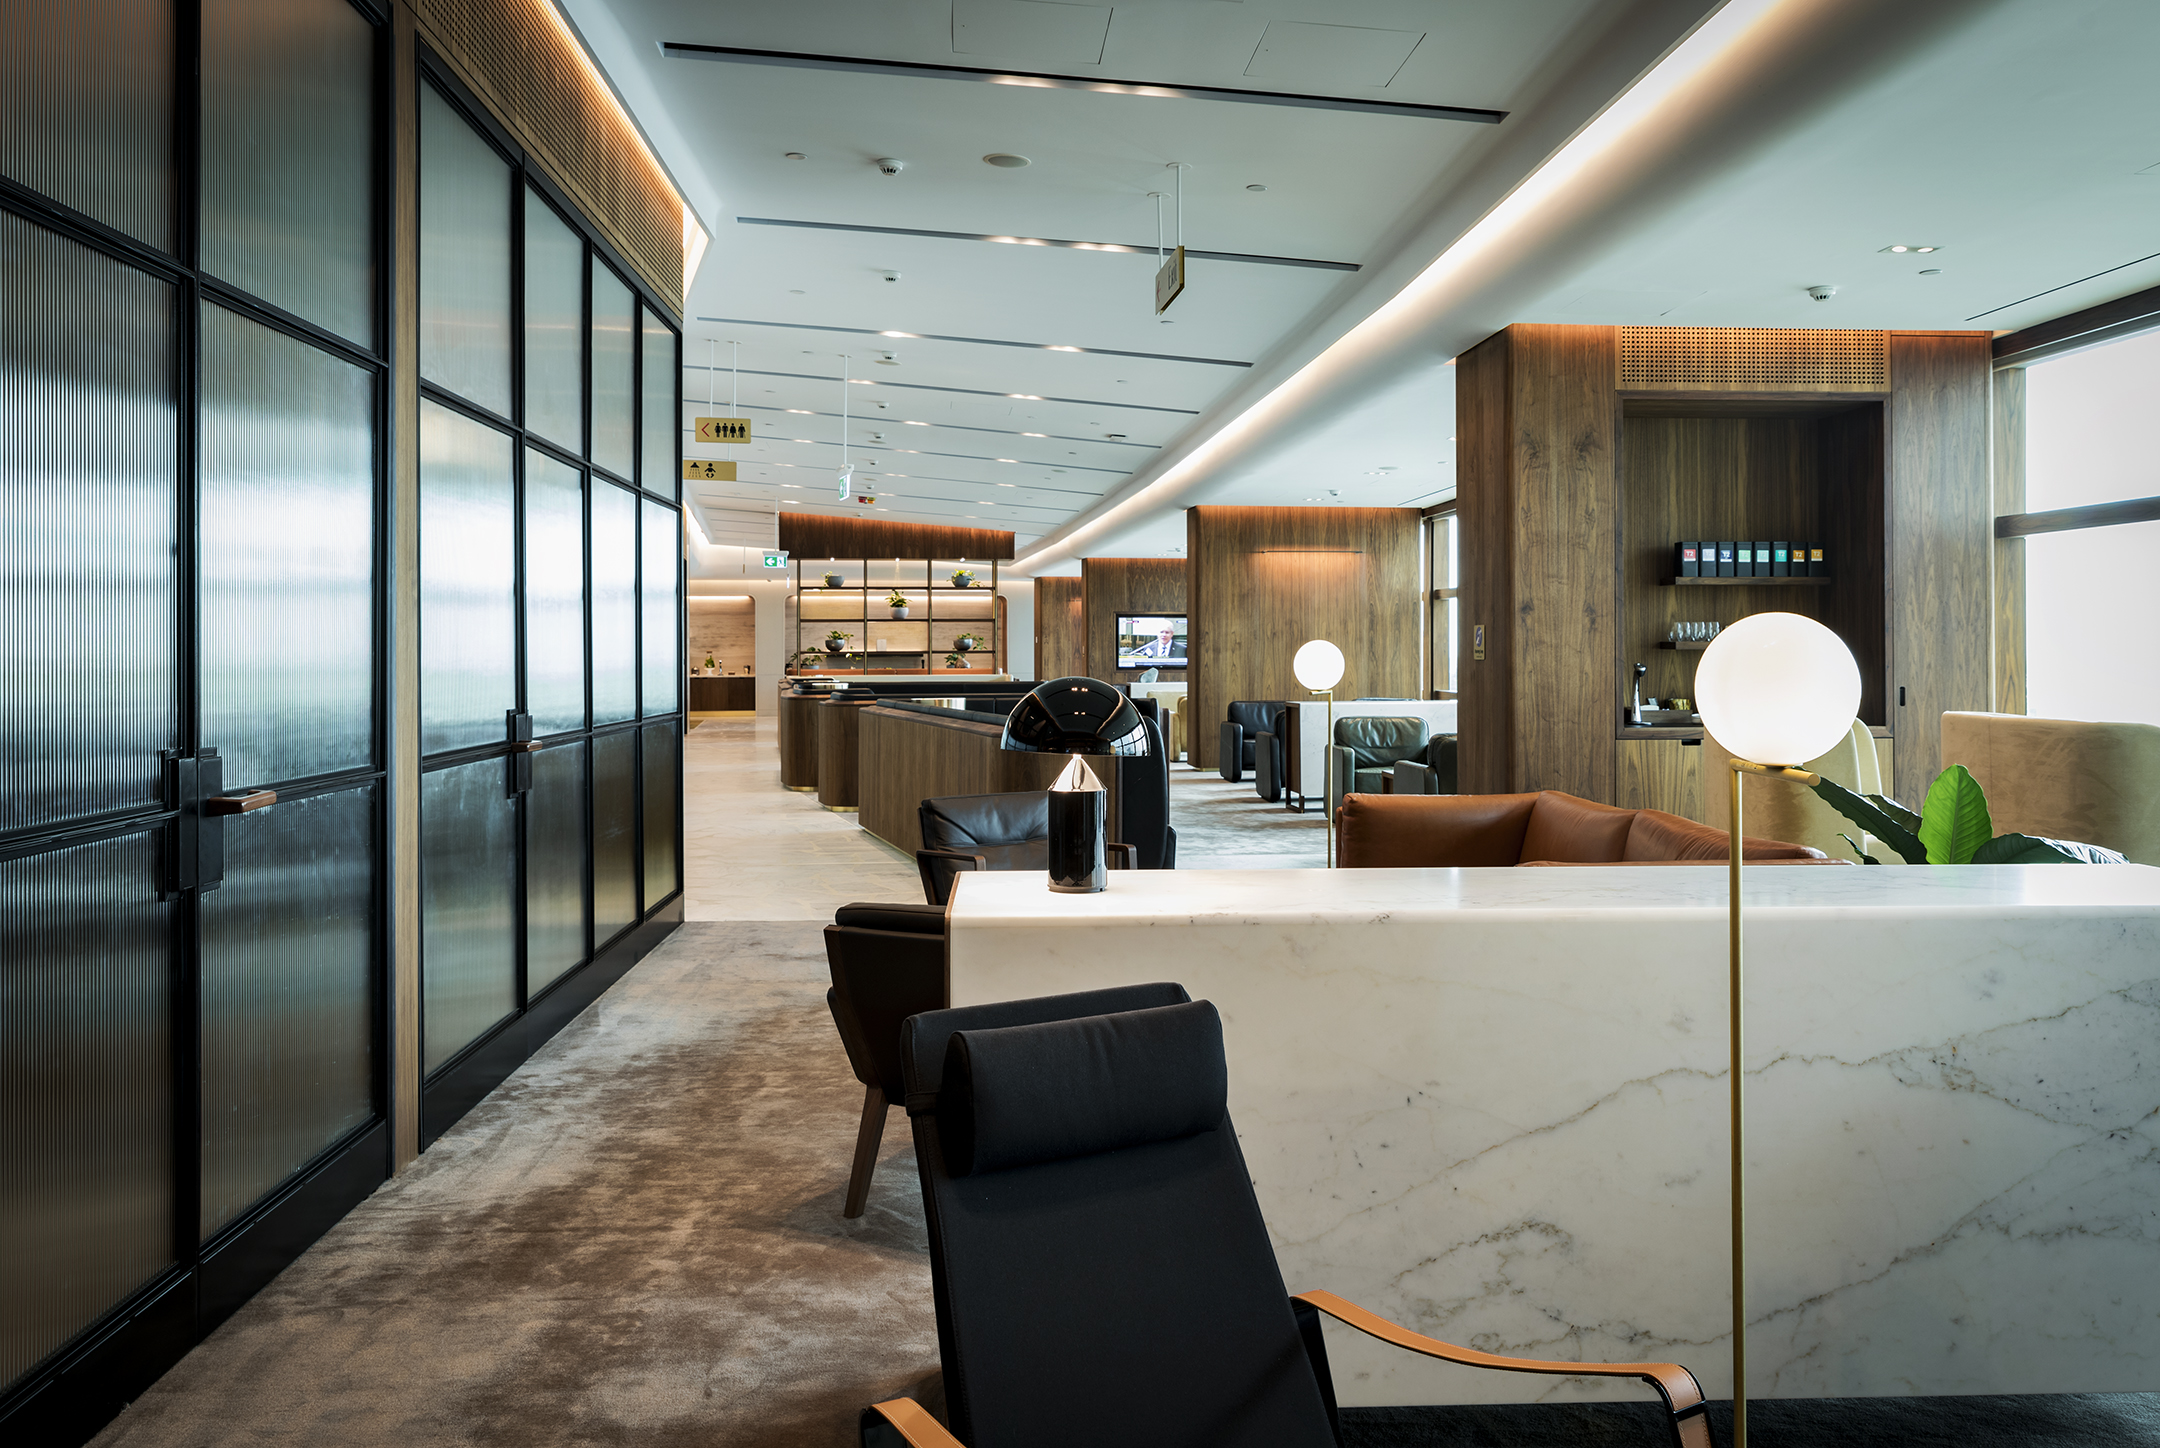 Gallery Of Qantas Chairman's Lounge By Tirar Local Australian Architecture & Timber Design Sydney, Nsw Image 7